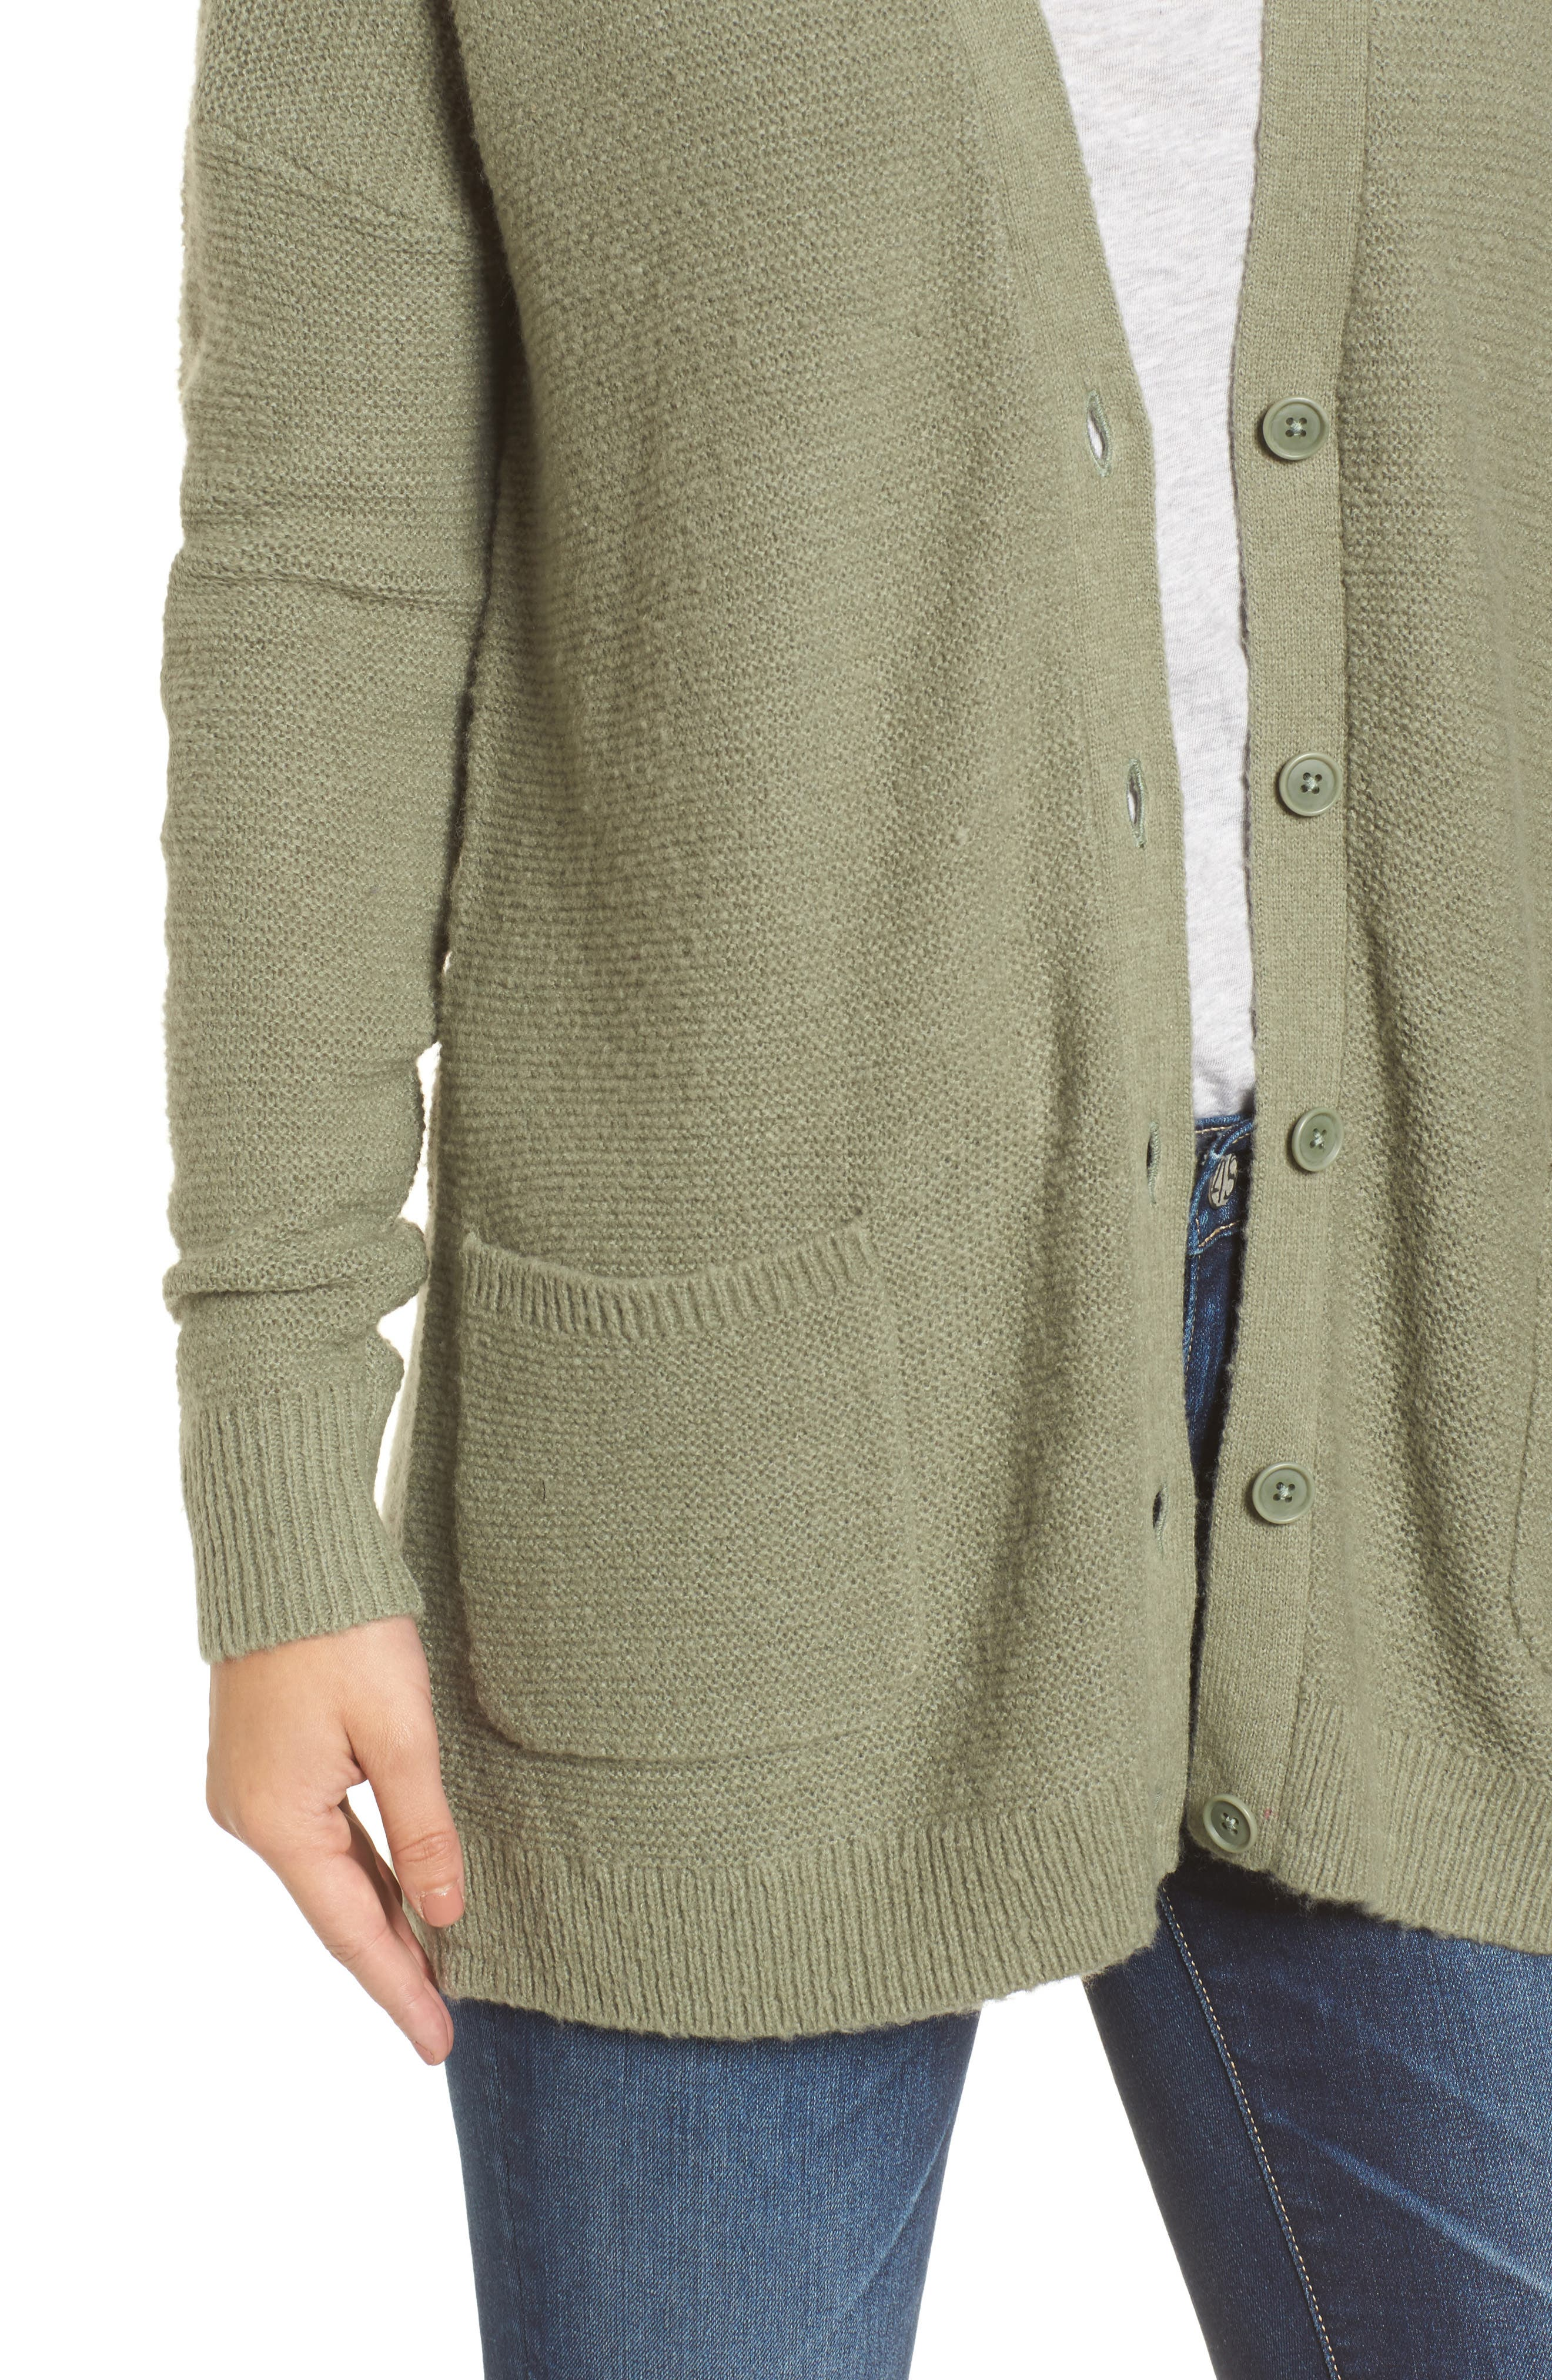 Relaxed Boyfriend Cardigan,                             Alternate thumbnail 23, color,